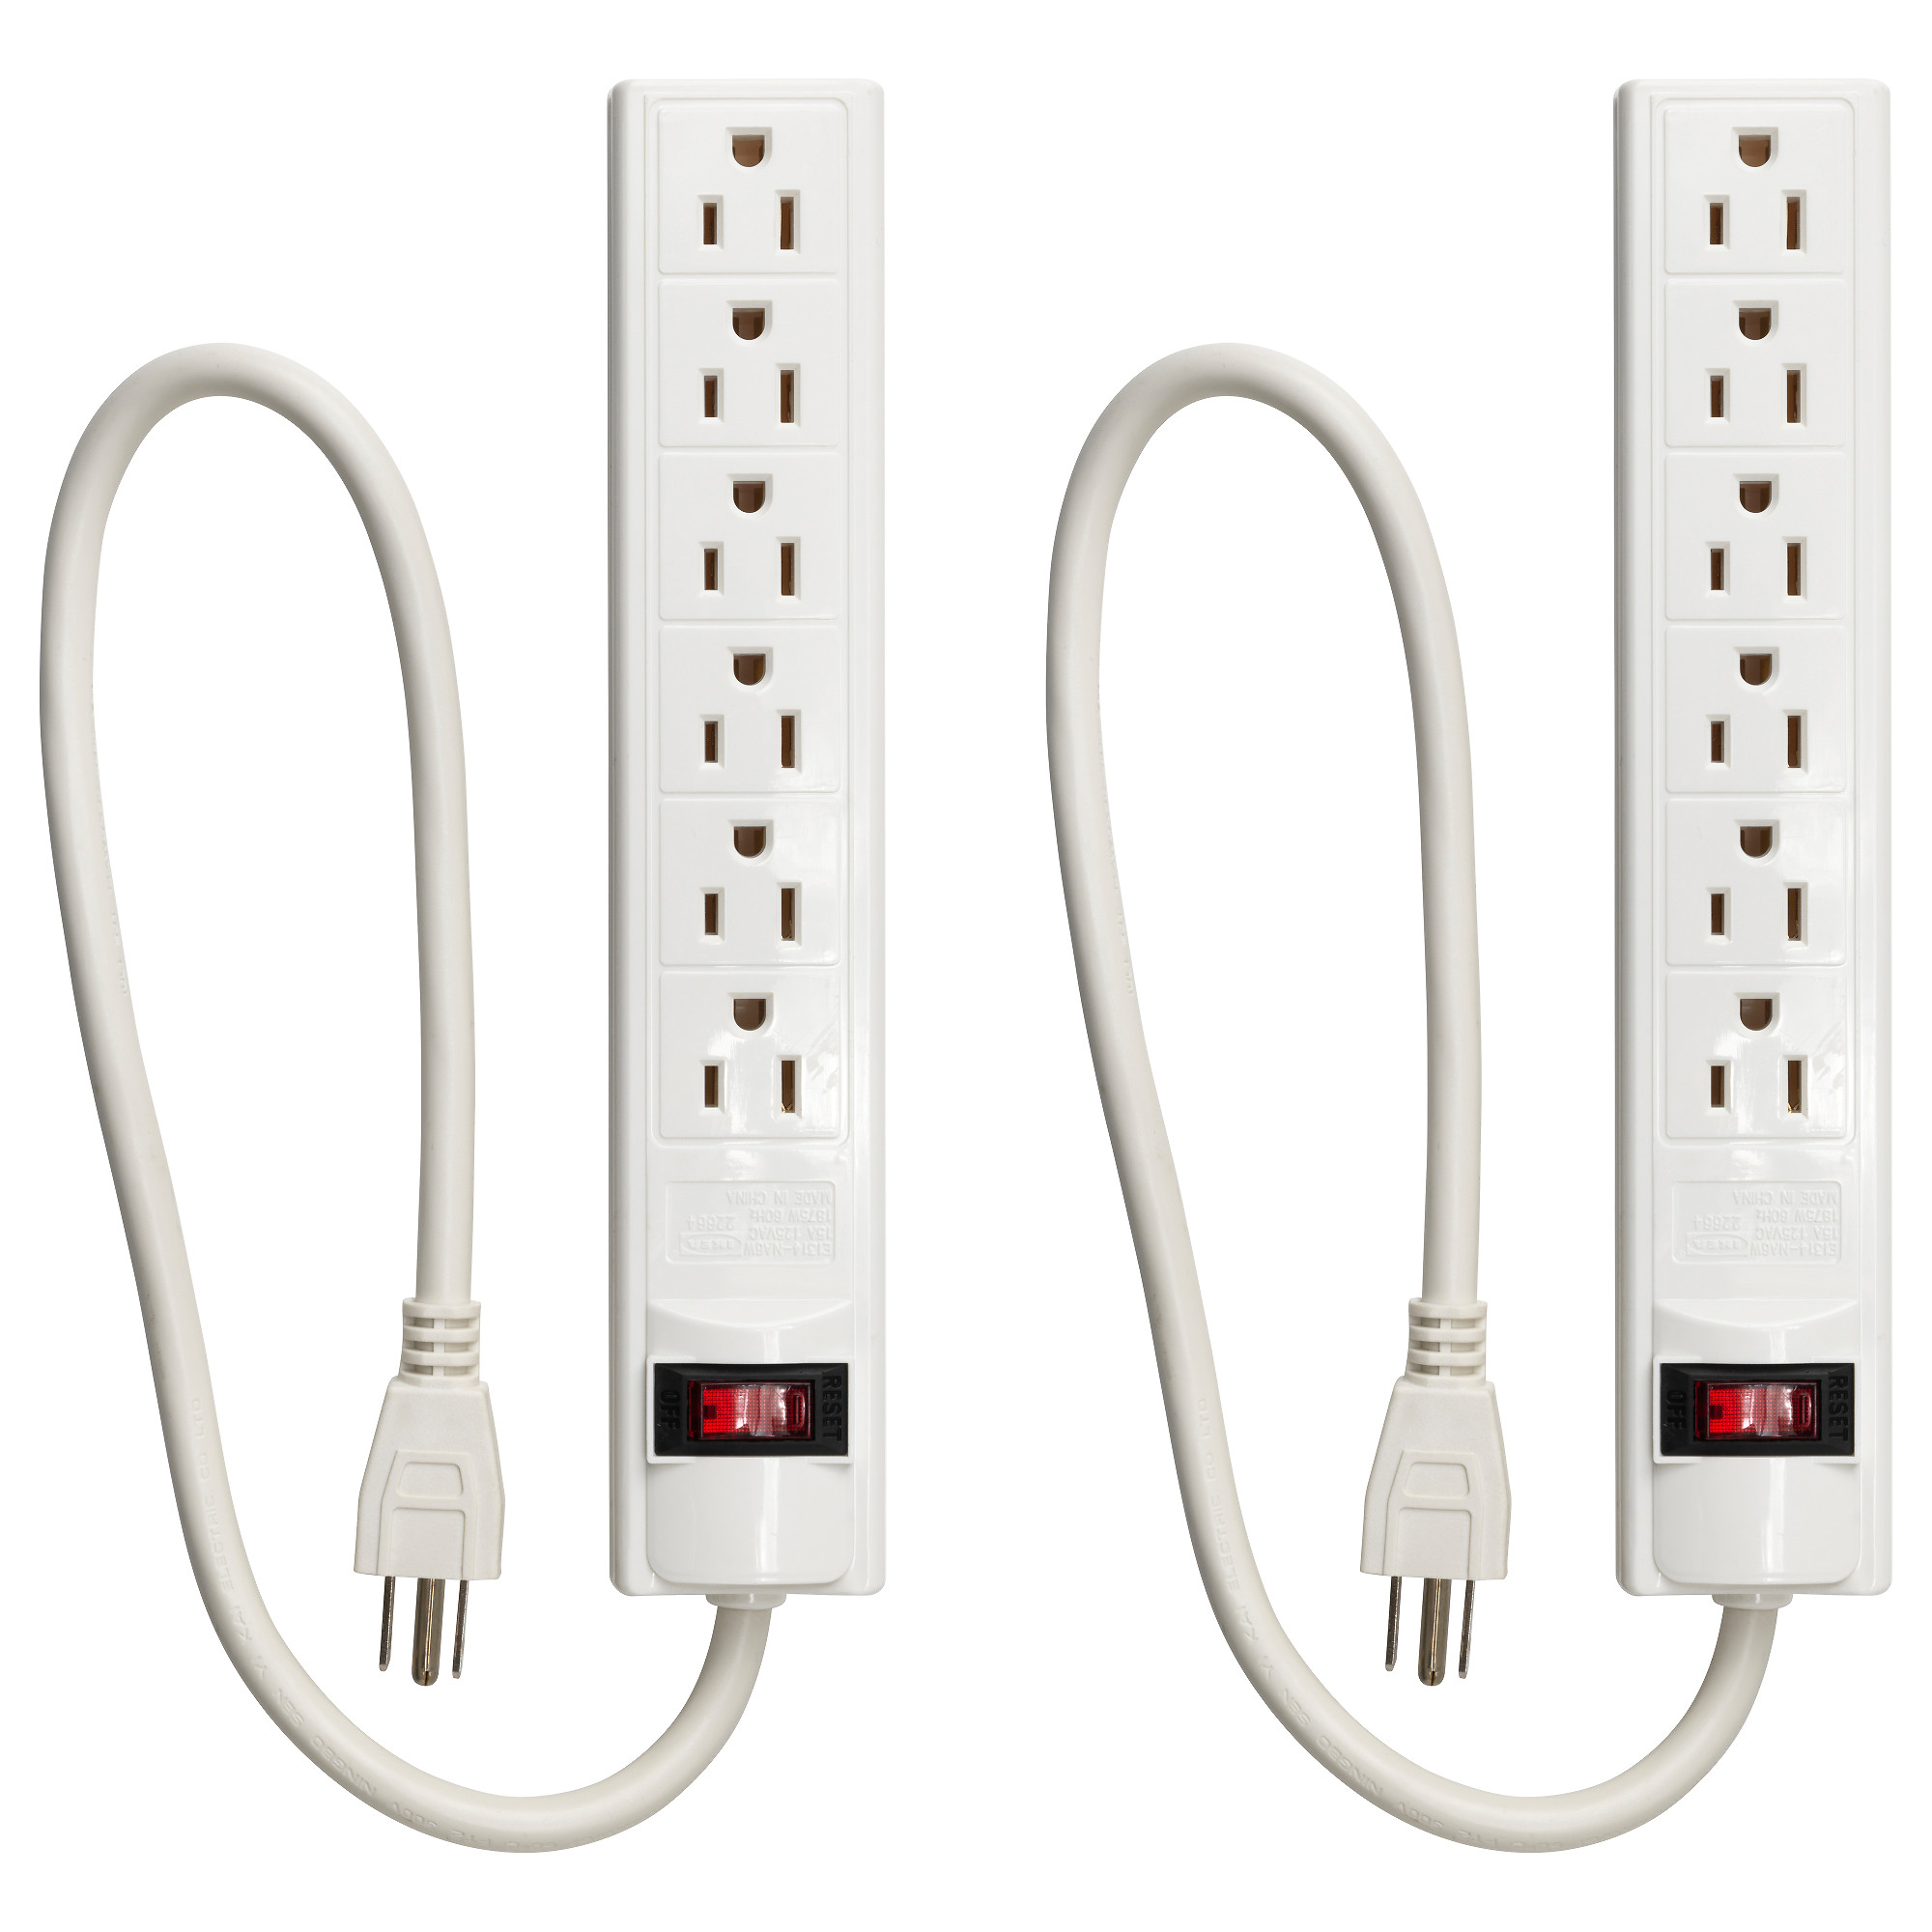 KOPPLA 6 Outlet Power Strip With Switch, Grounded White Cord Length: 19 ¾